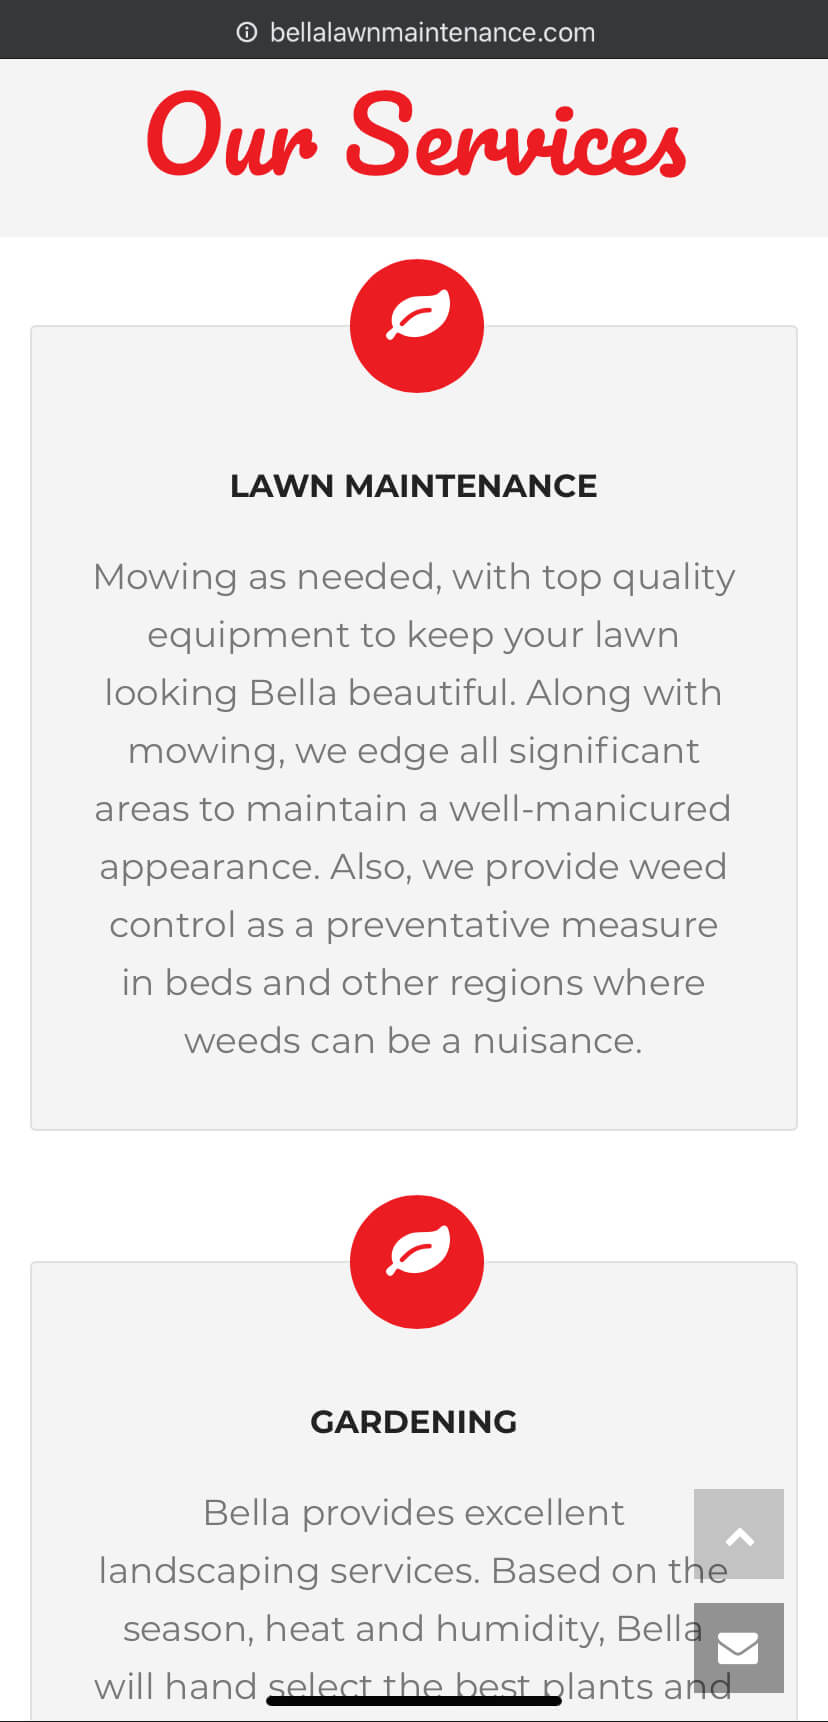 bella lawn mainetence services page mobile